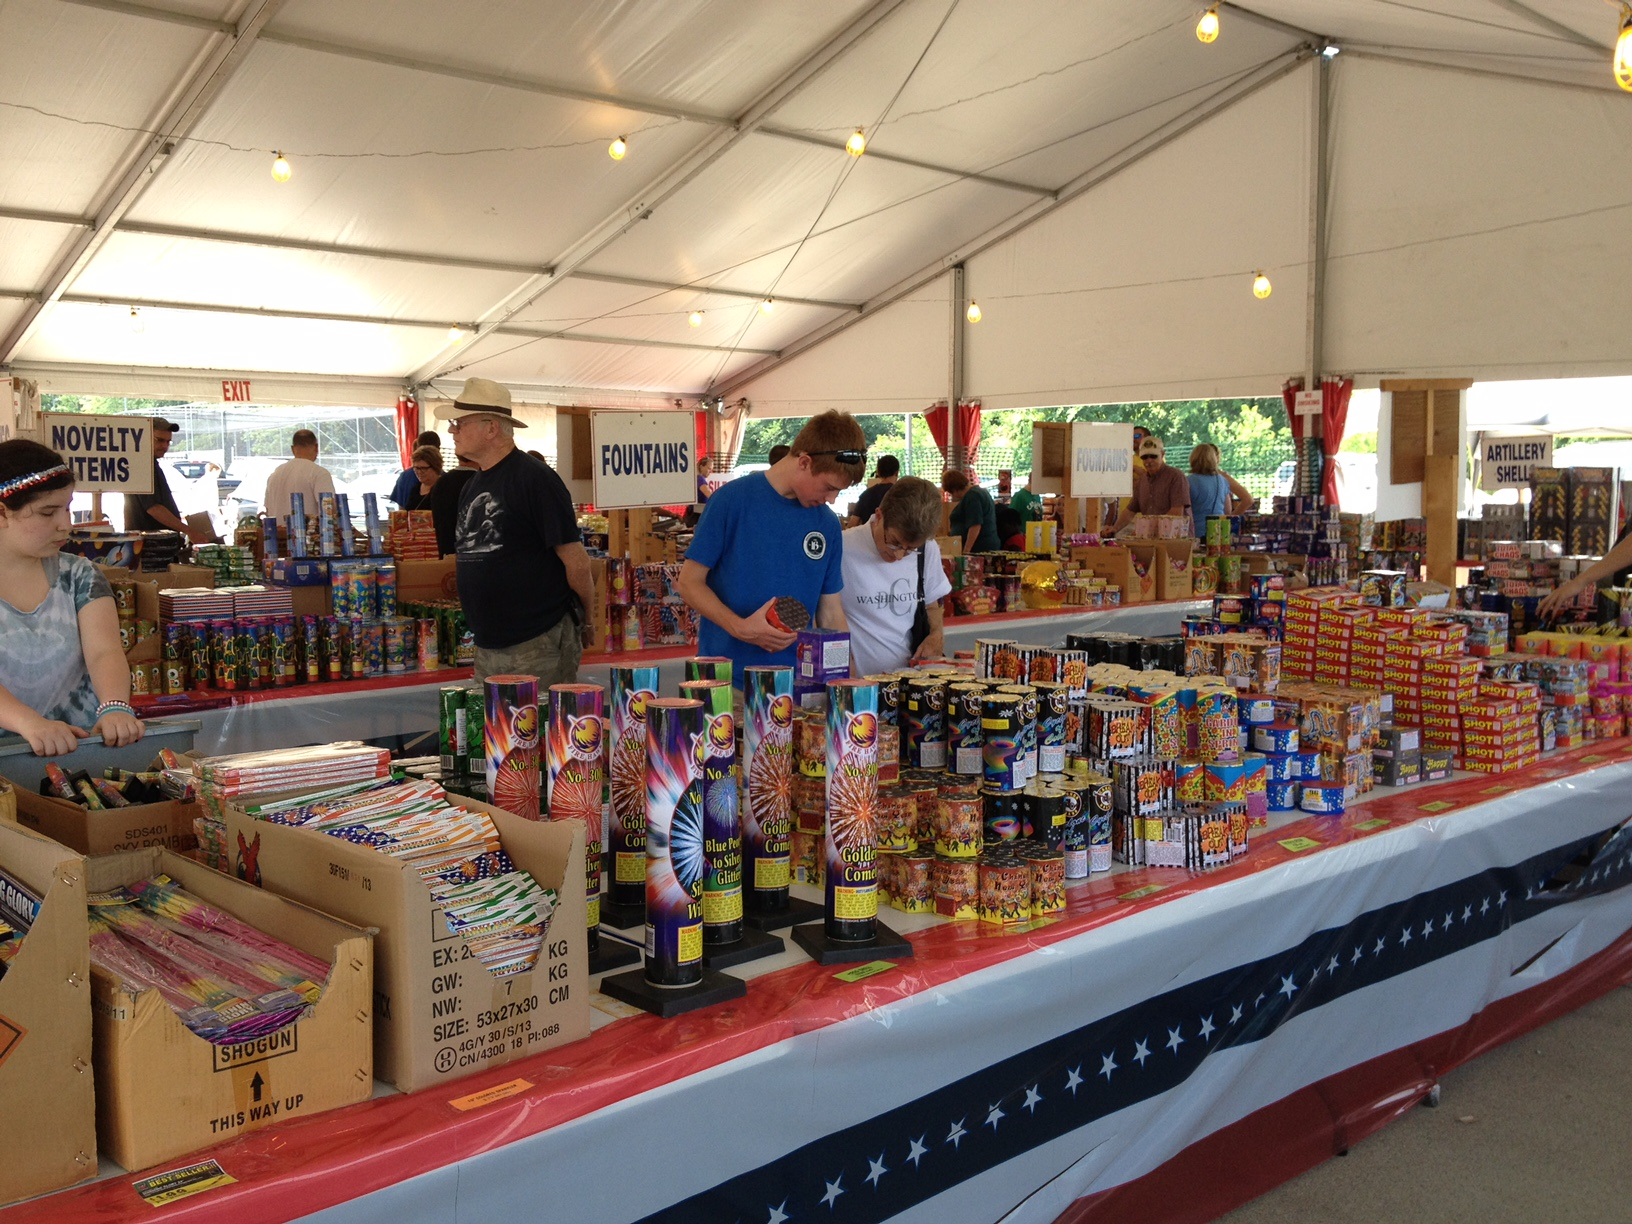 Stands Address Dates Payments & Welcome to Crazy Cracker Fireworks - Retail Locations